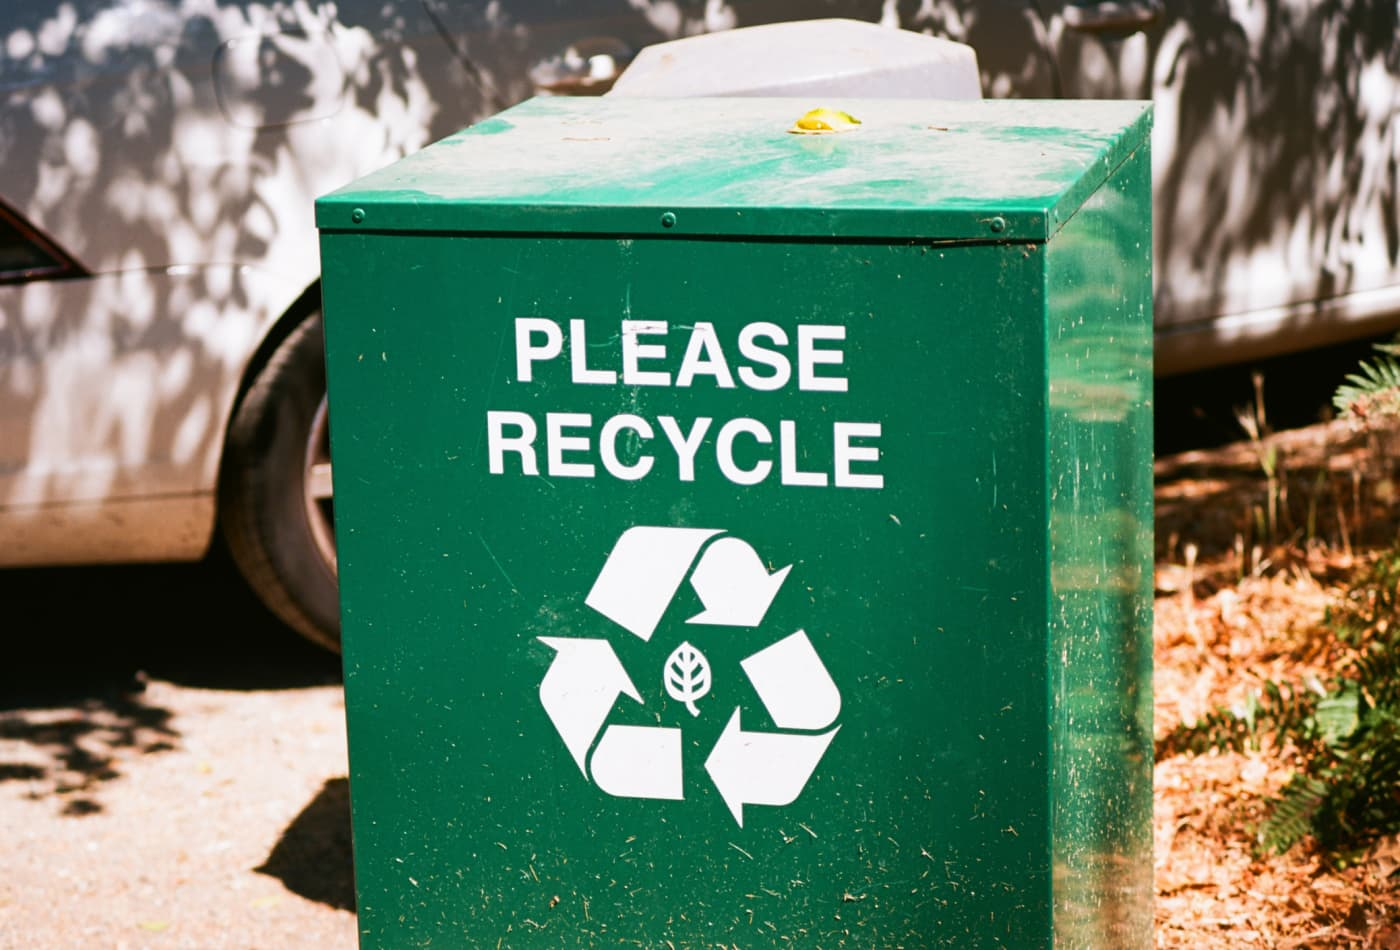 Getting serious about recycling means starting with truly recyclable products